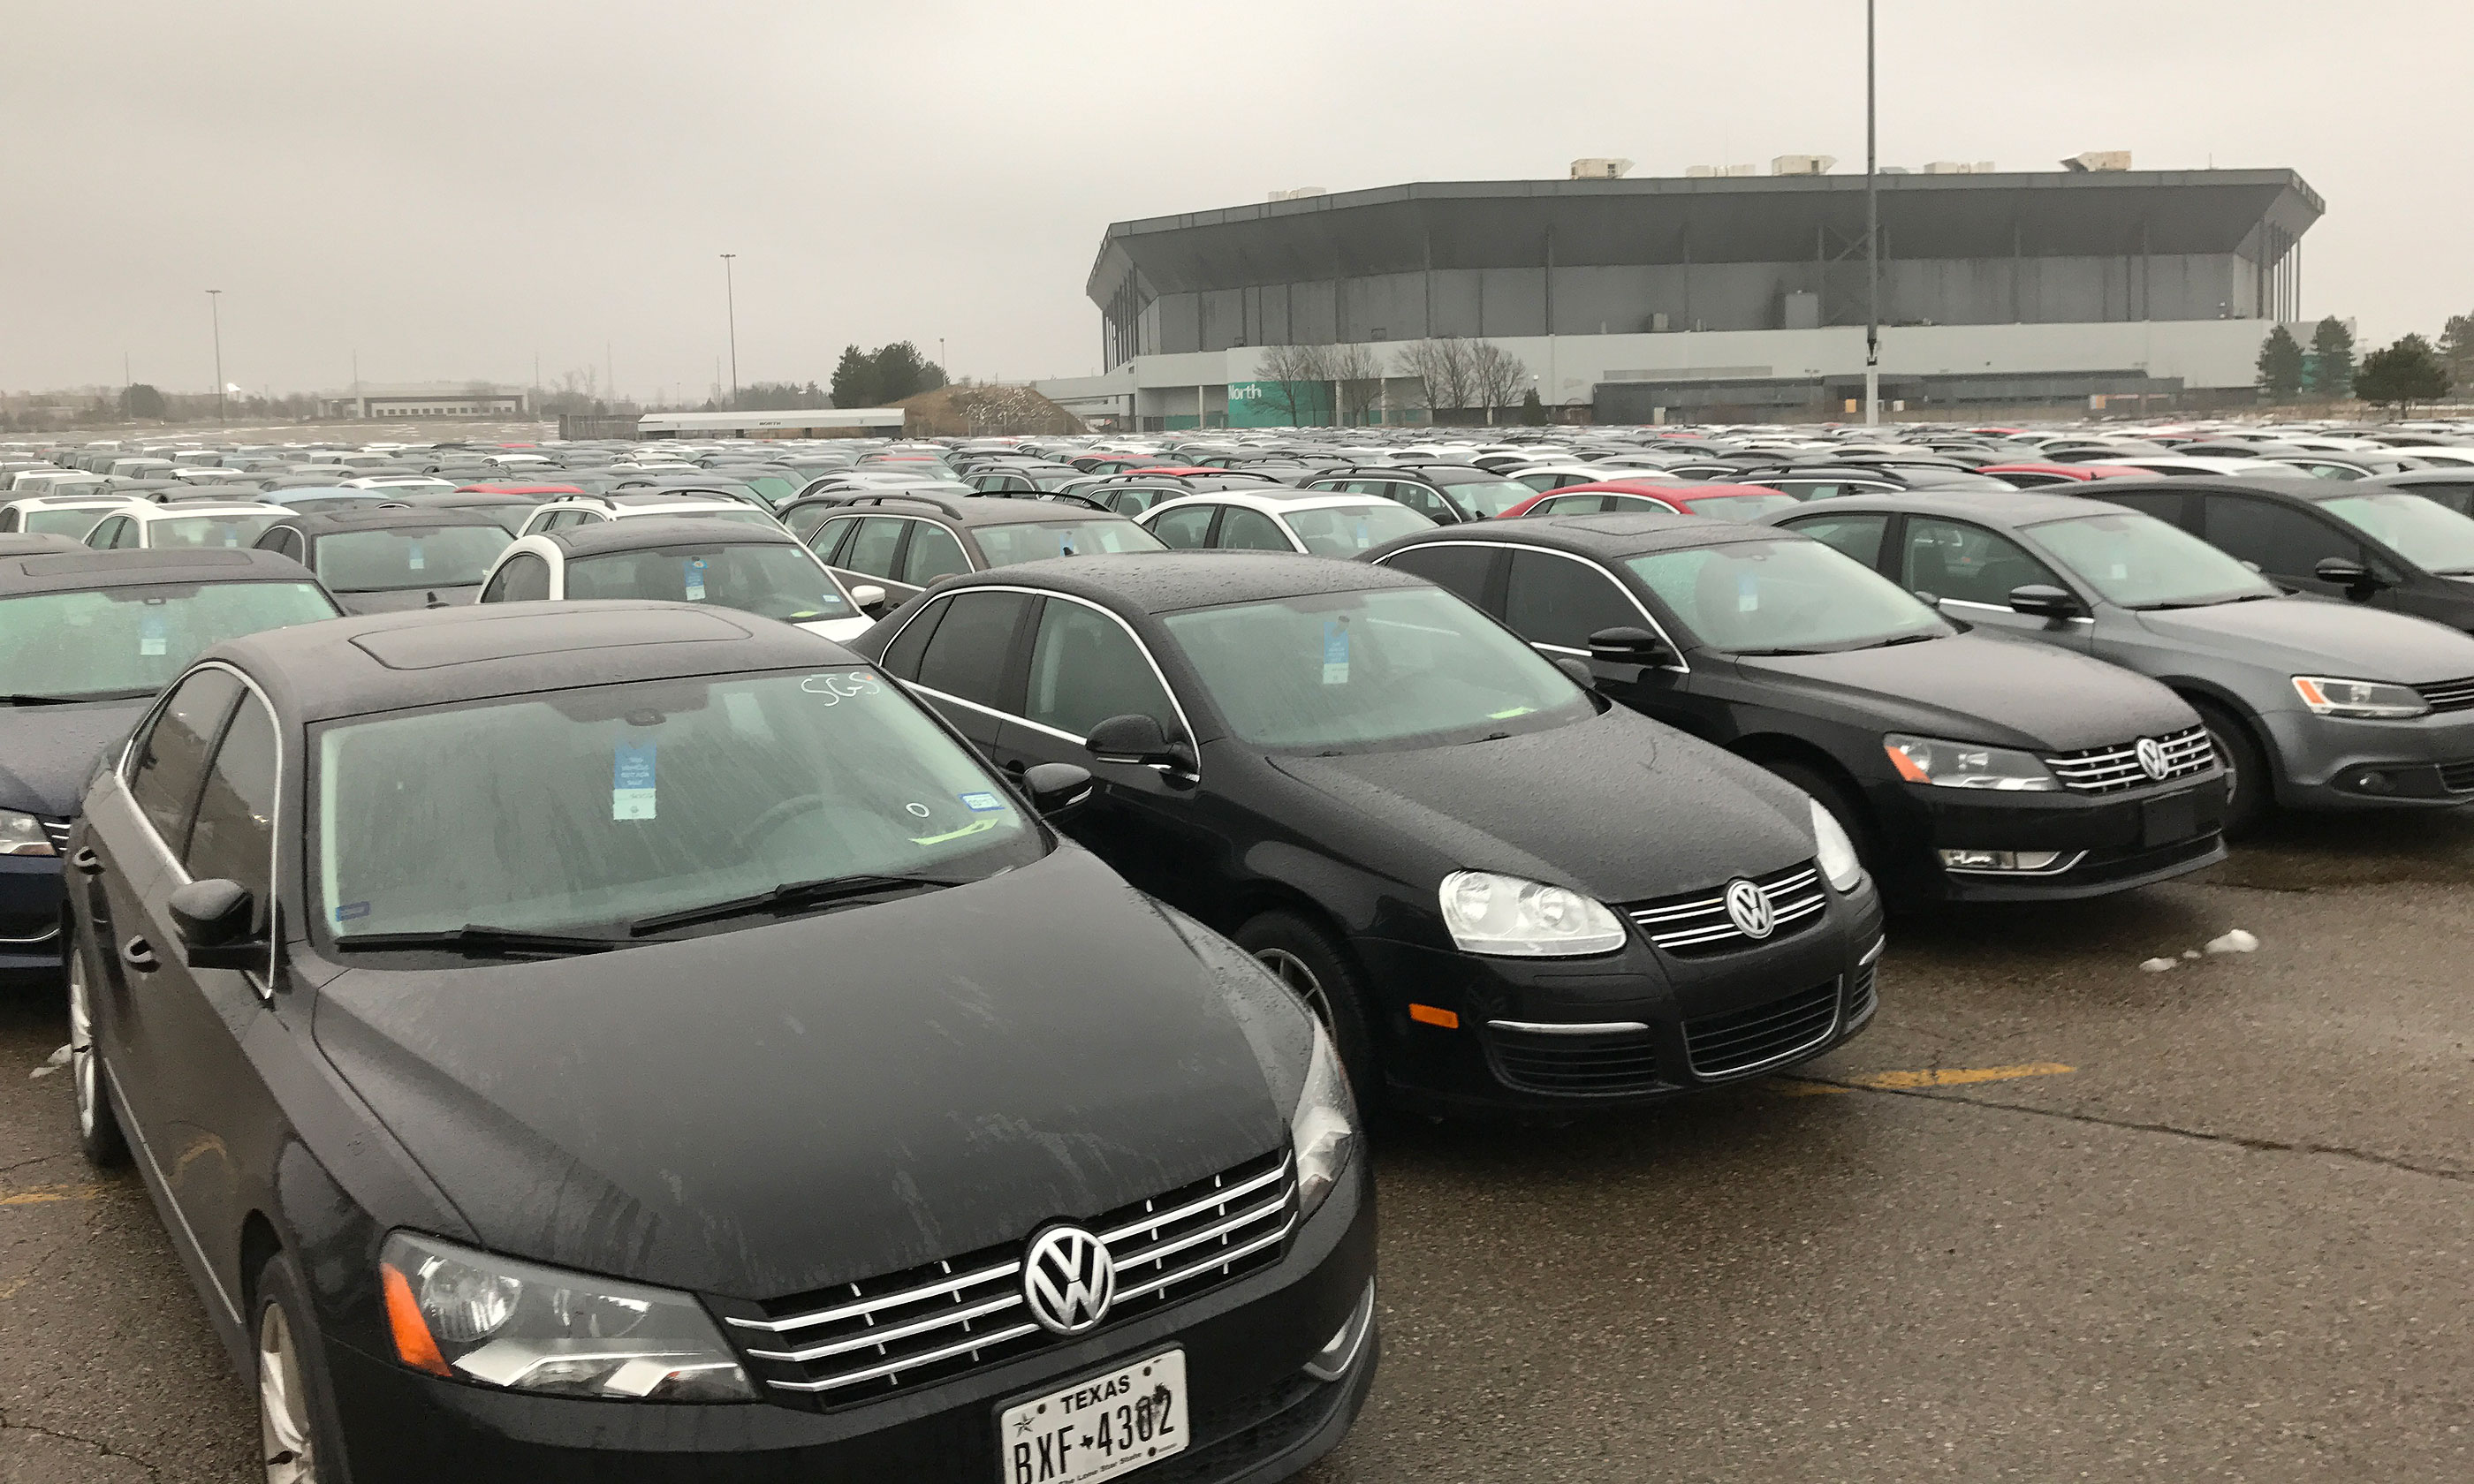 Canadian Owned Business In Court For Storing Vw Diesels At Old Nfl Stadium Automotive News Canada